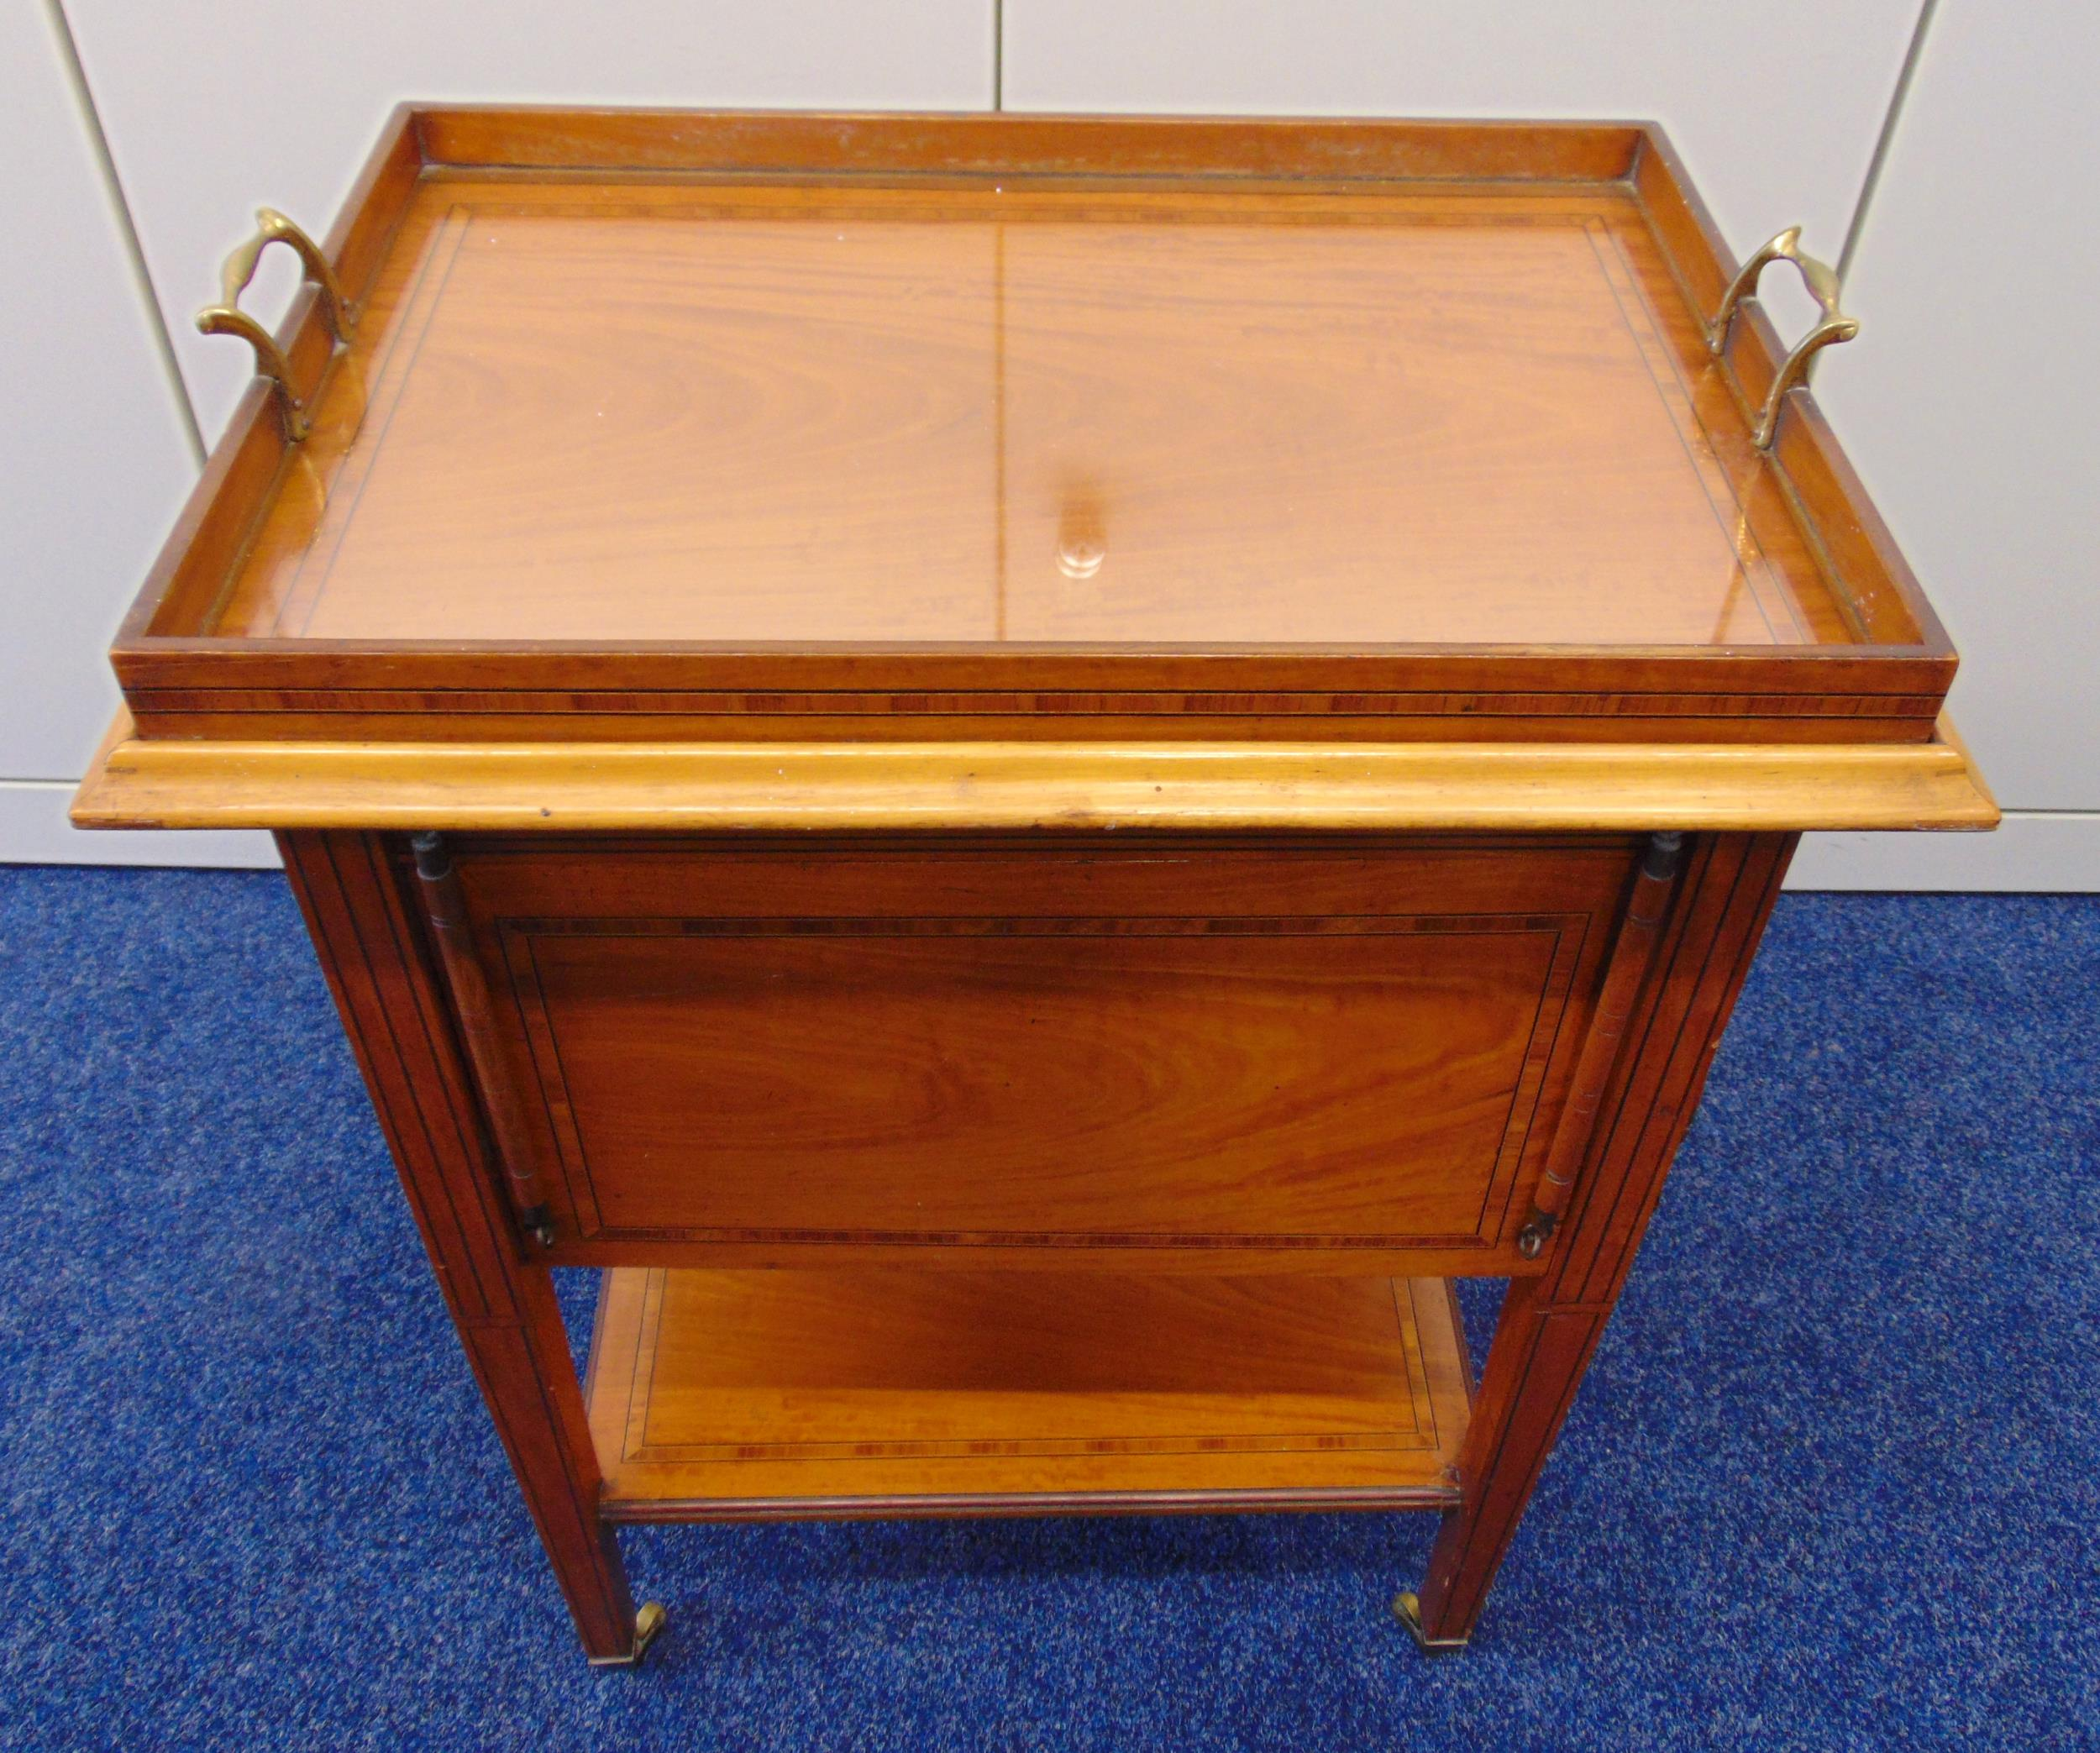 A rectangular French mahogany tea tray table with satinwood inlaid bands and hinged sides, on four - Image 2 of 2